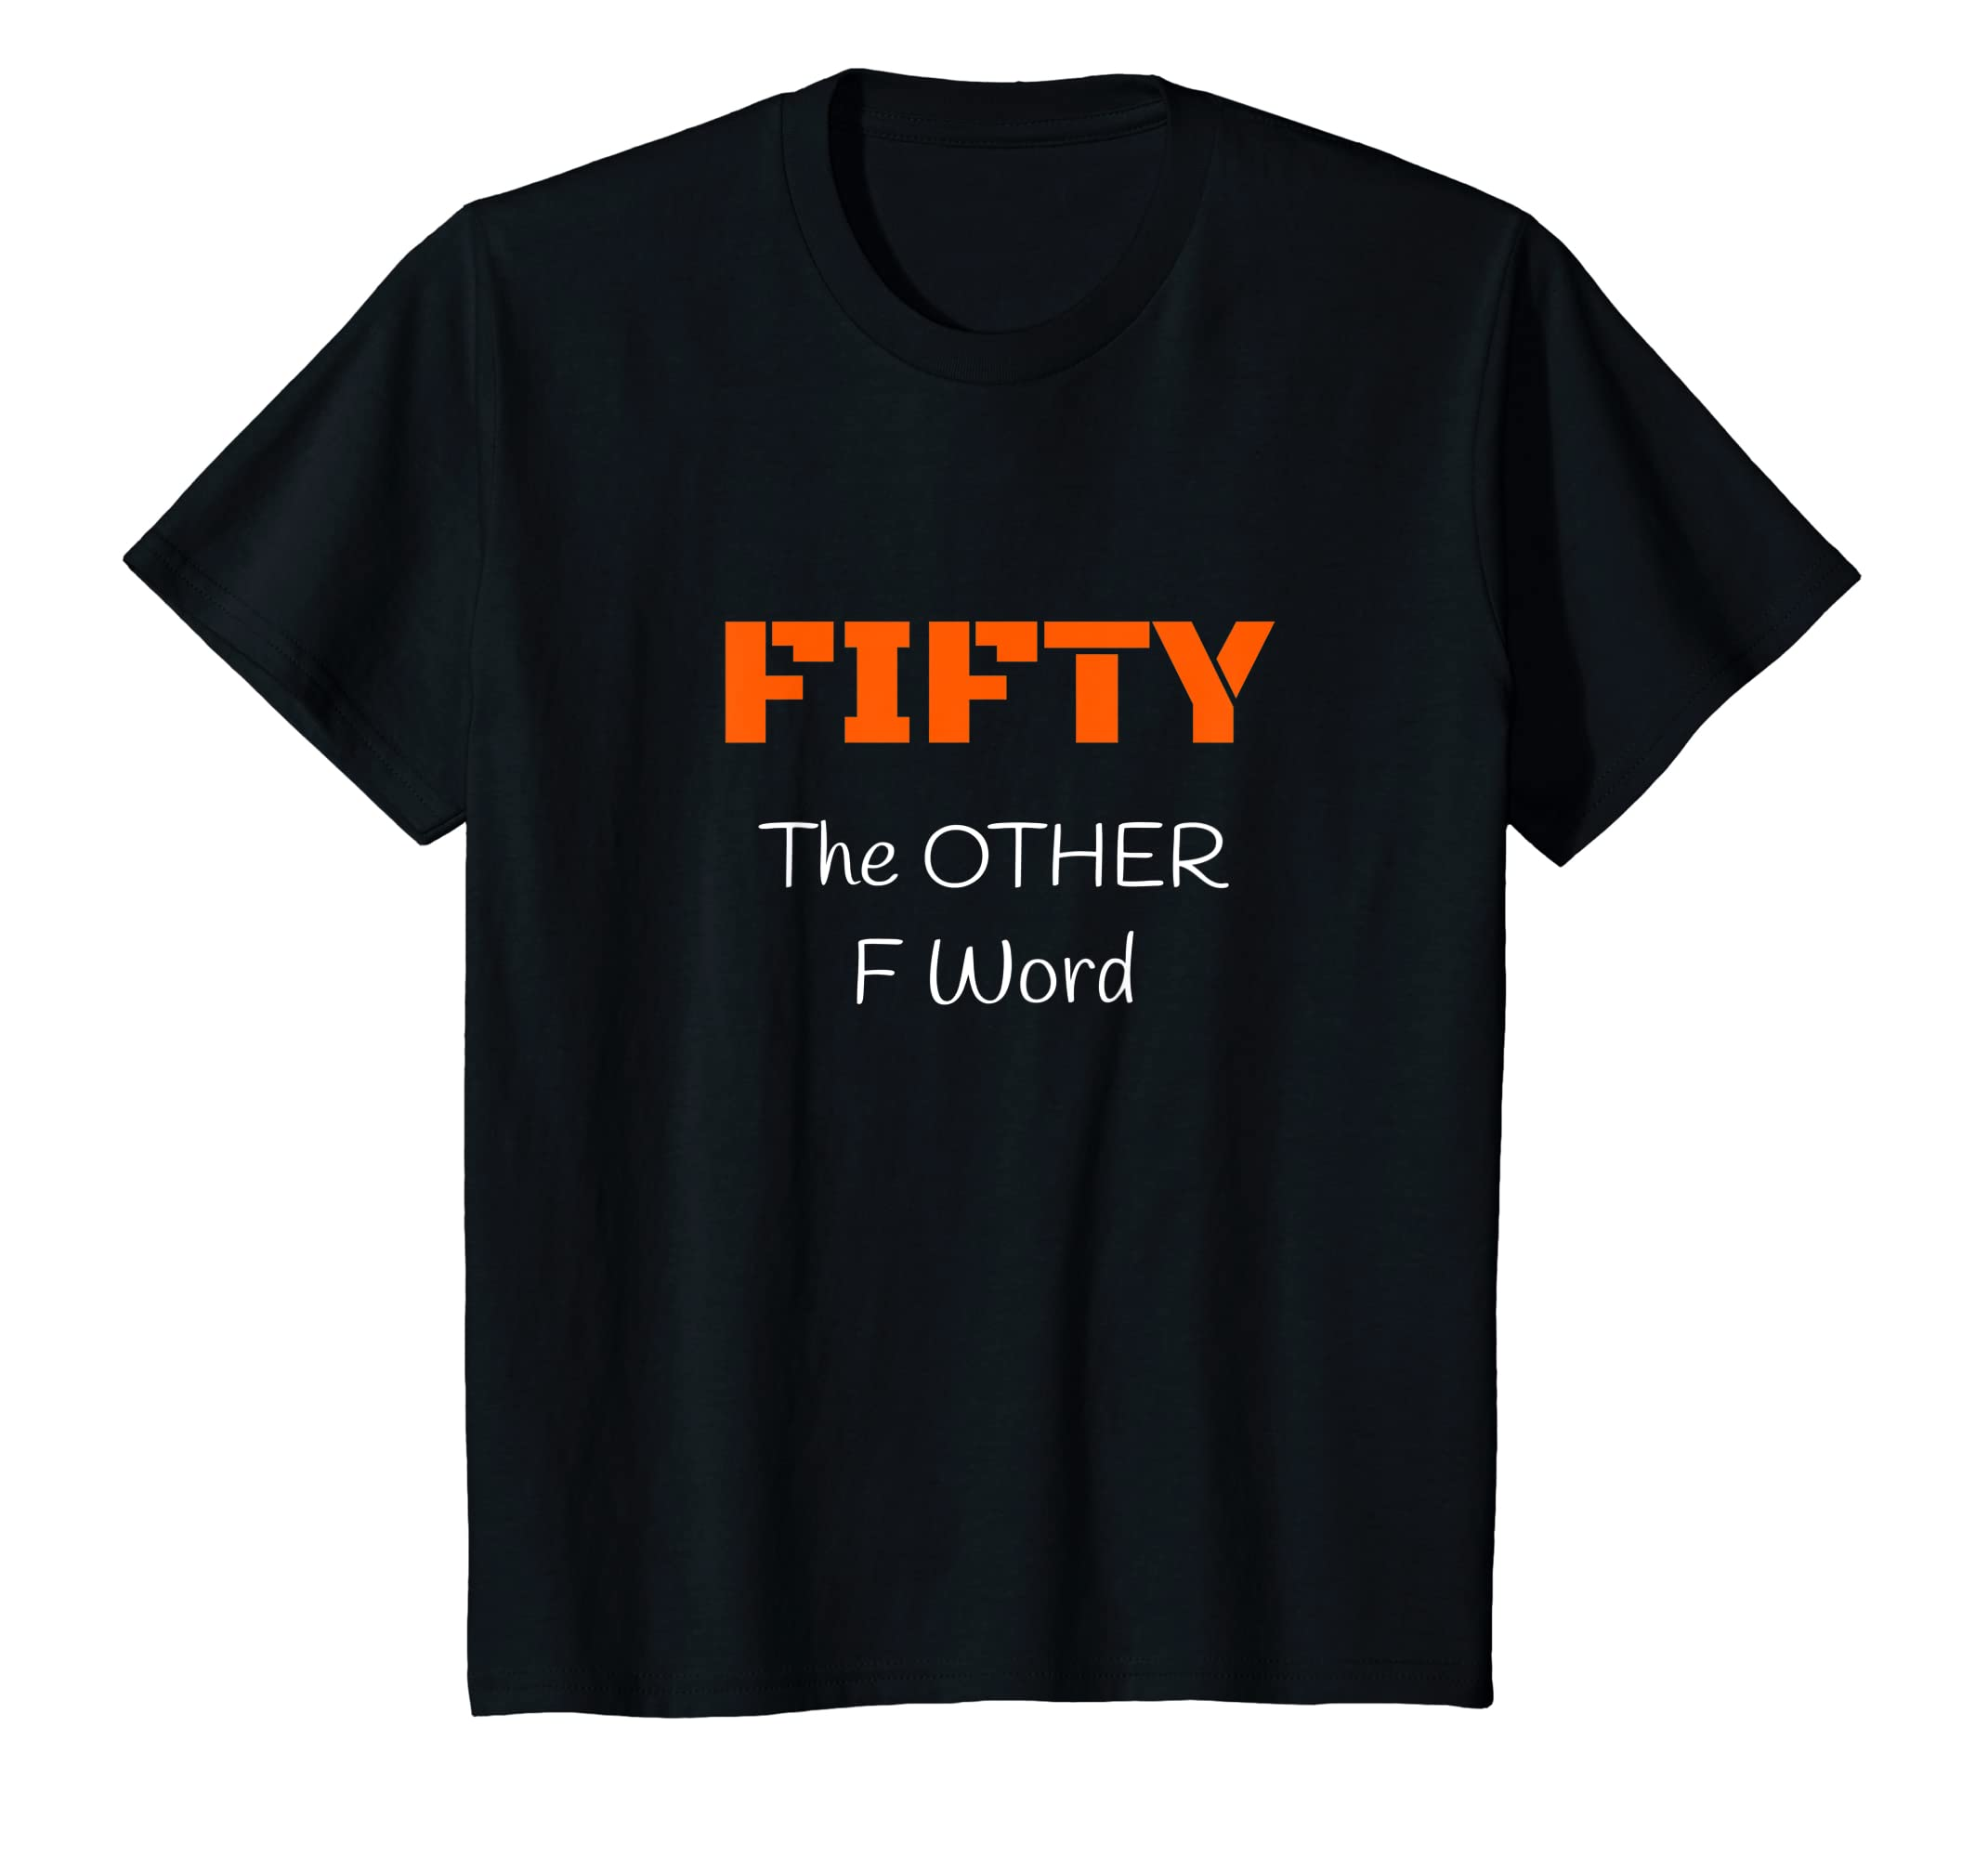 071cdae08e7 Amazon.com  Funny 50th Birthday Shirt Gifts - FIFTY the OTHER F Word   Clothing